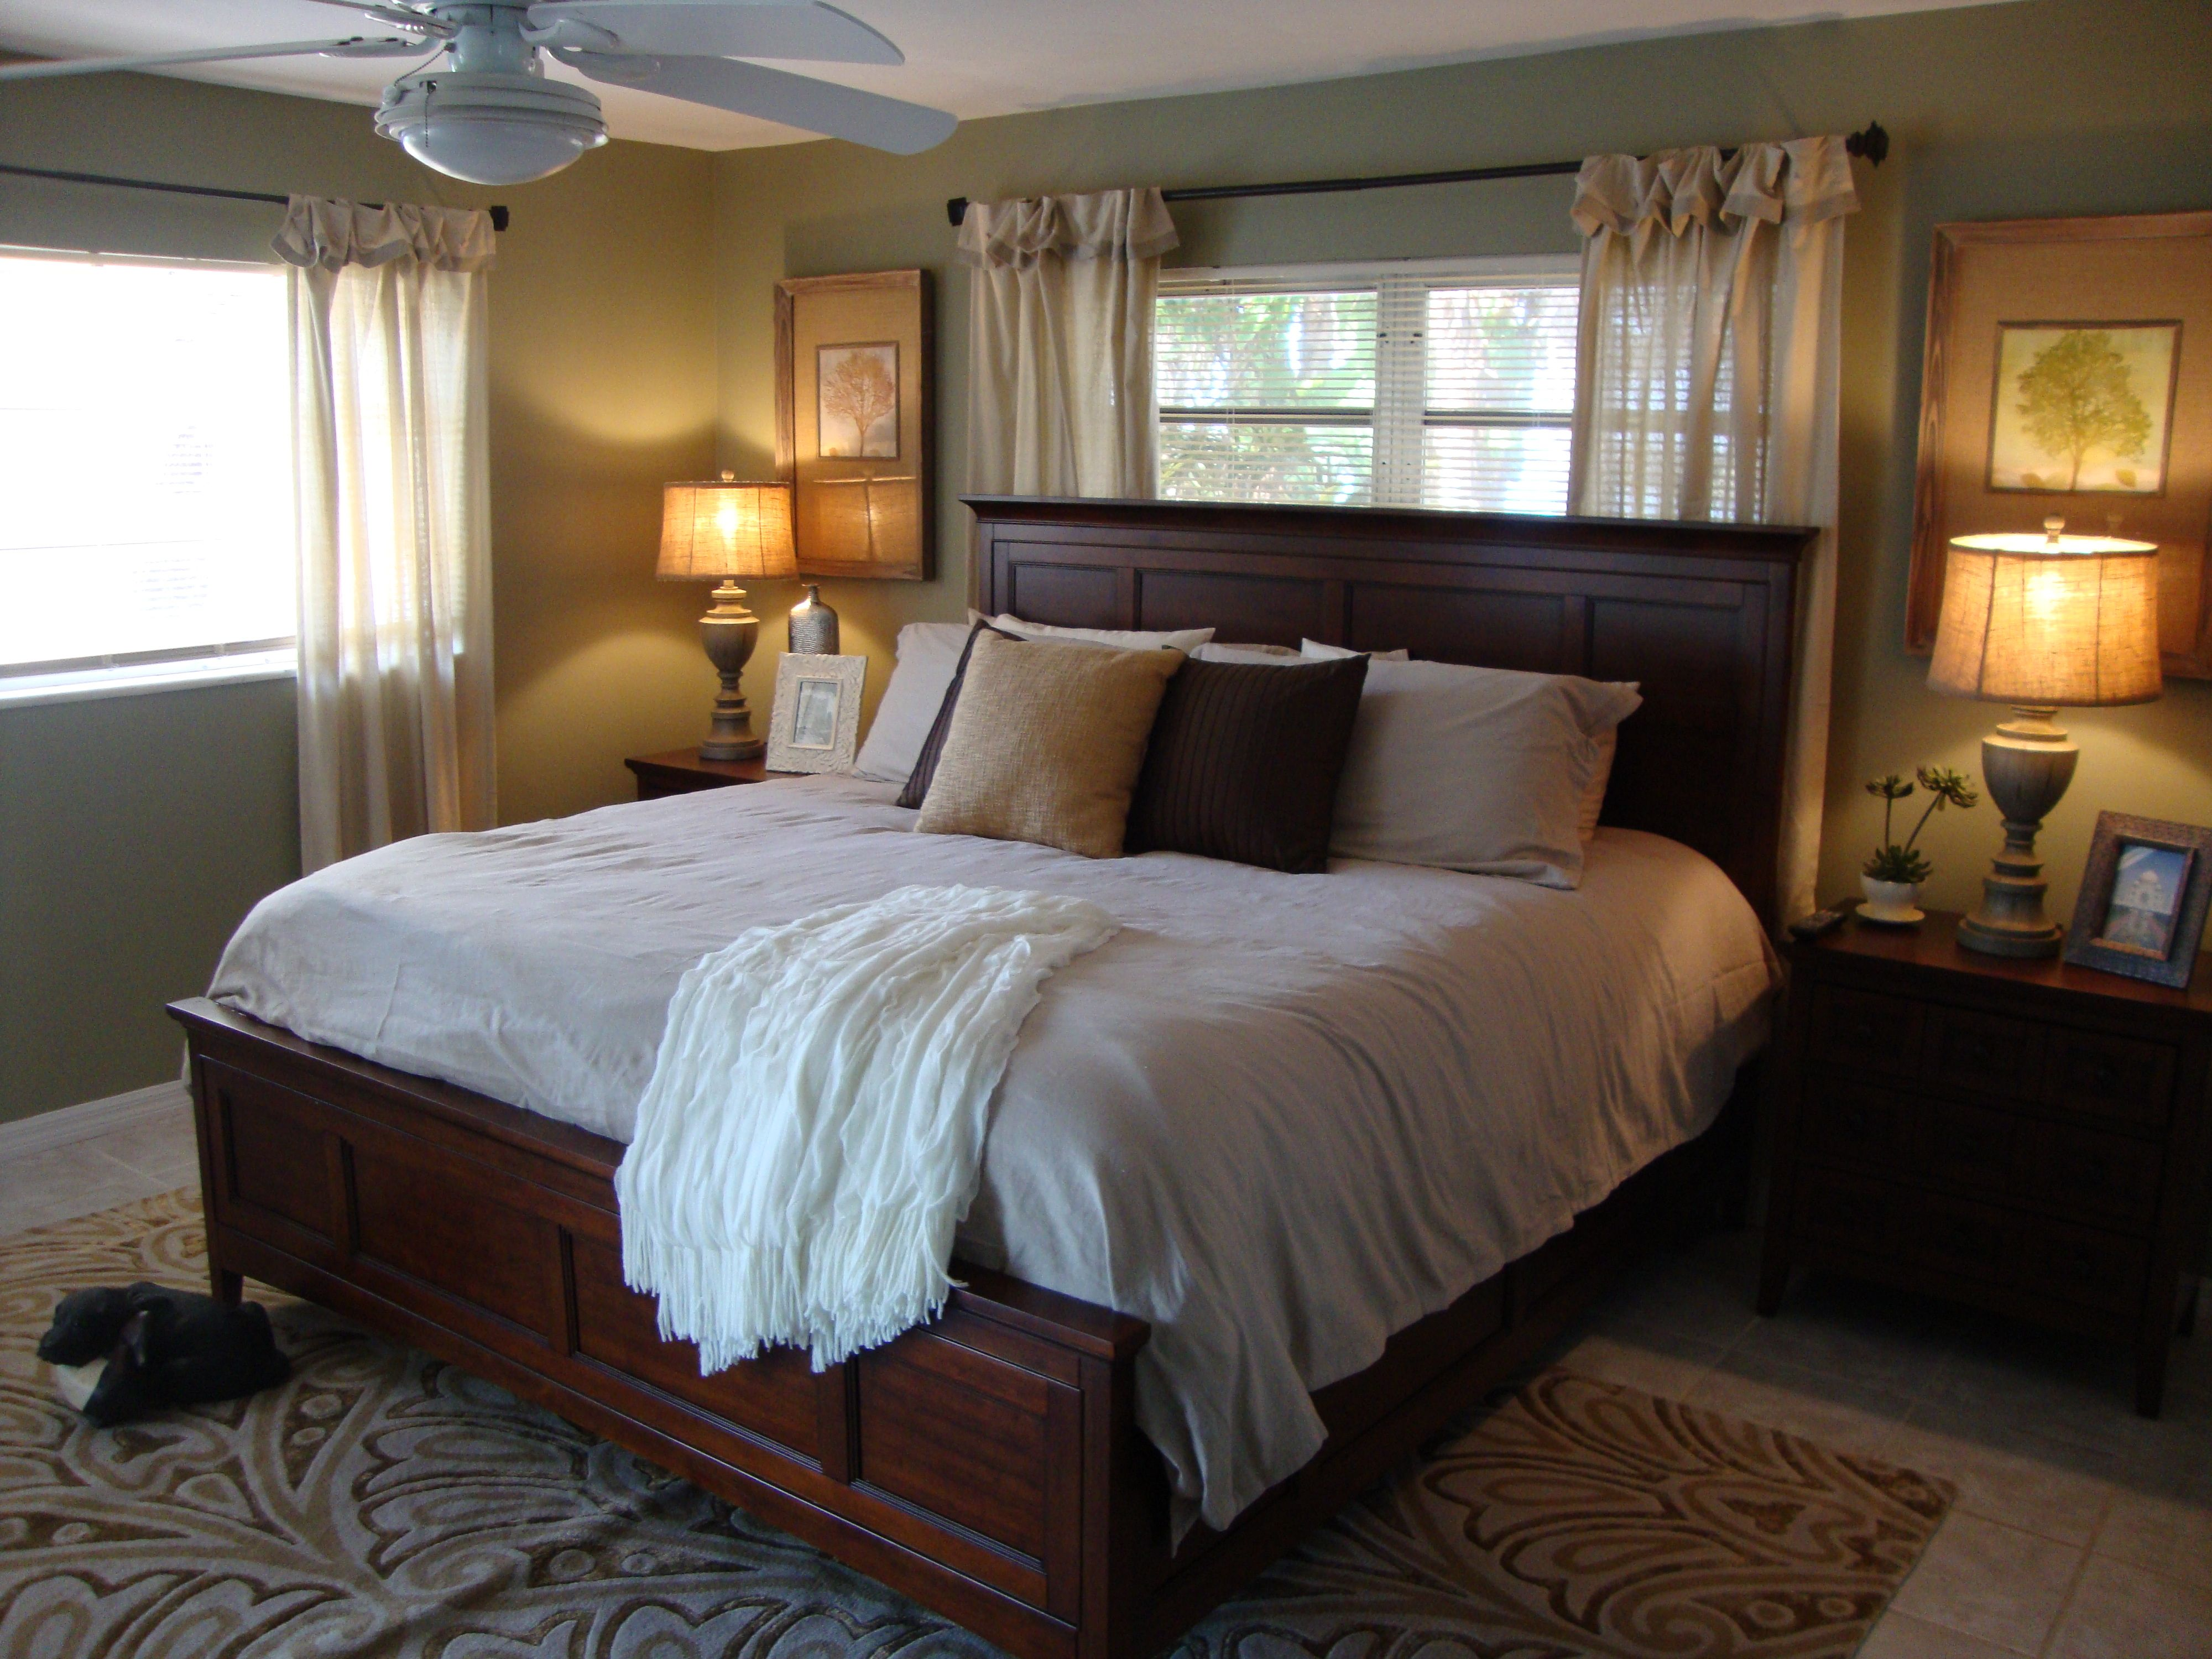 Bedroom ideas window behind bed  kinda like the bed in front of the window  master  pinterest